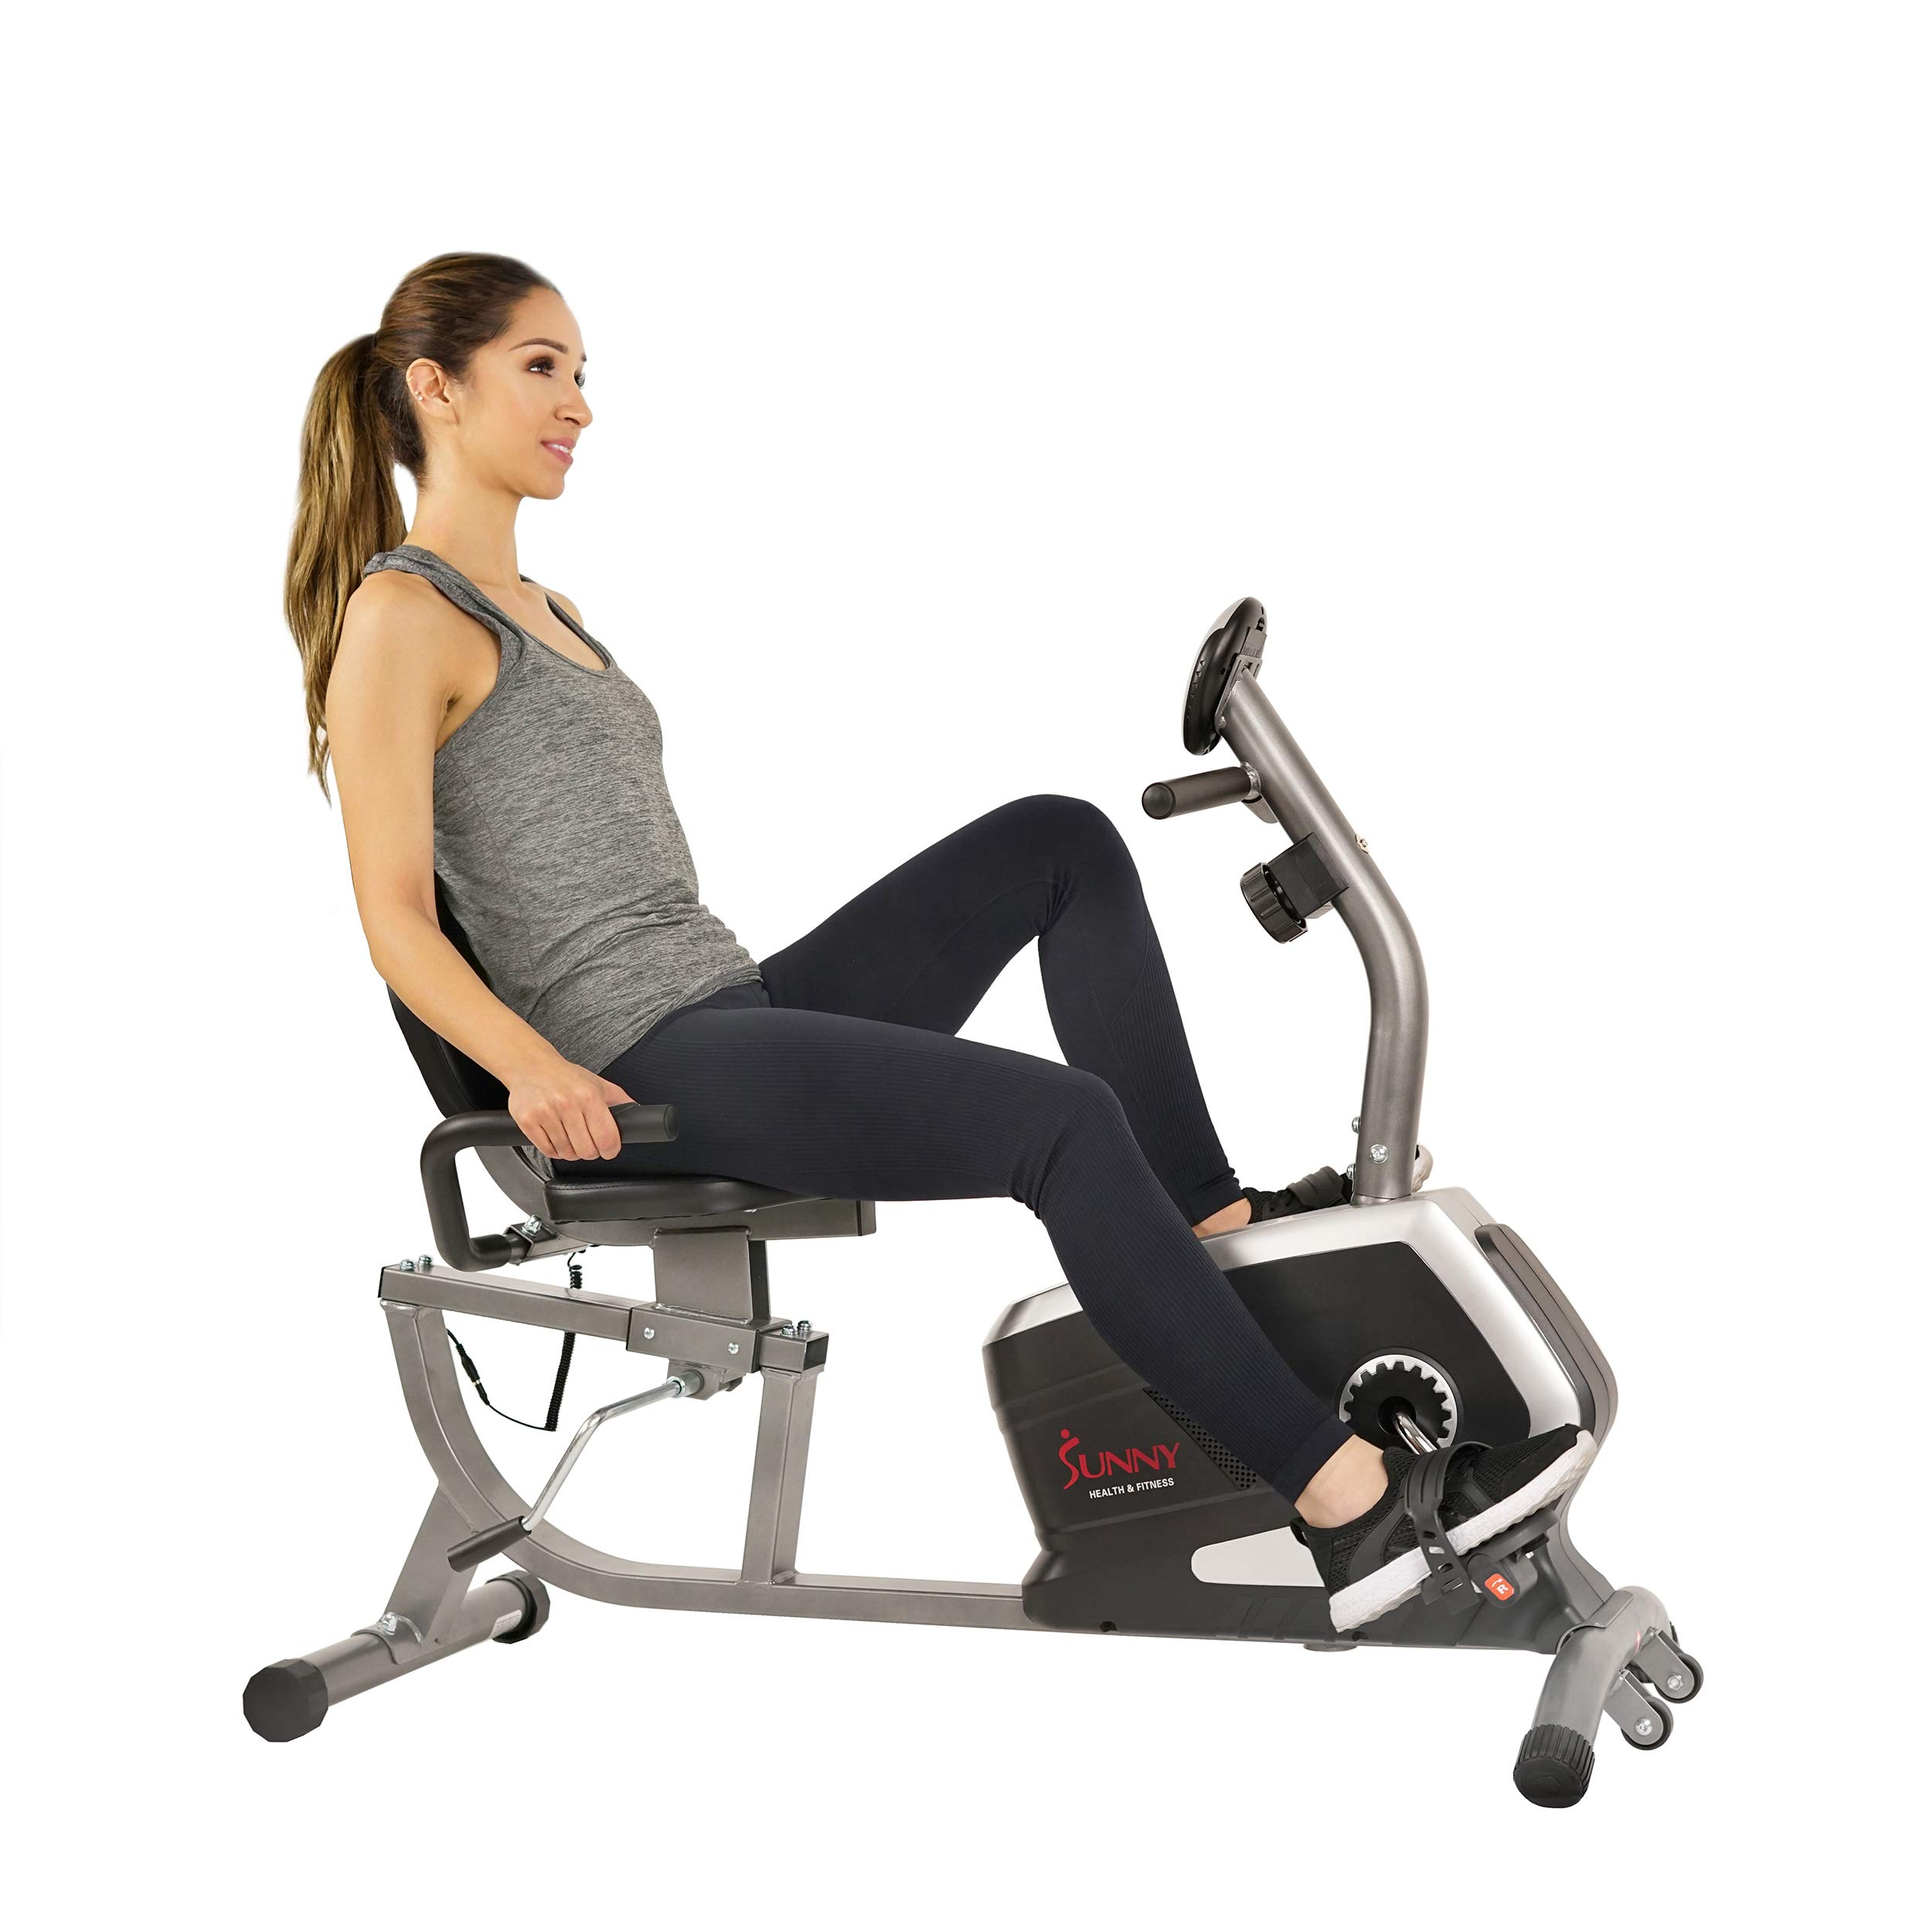 Sunny Health & Fitness Magnetic Recumbent Bike Exercise Bike, 300lb Capacity, Easy Adjustable Seat, Monitor, Pulse Rate Monitoring - SF-RB4616 by Sunny Health & Fitness (Image #1)